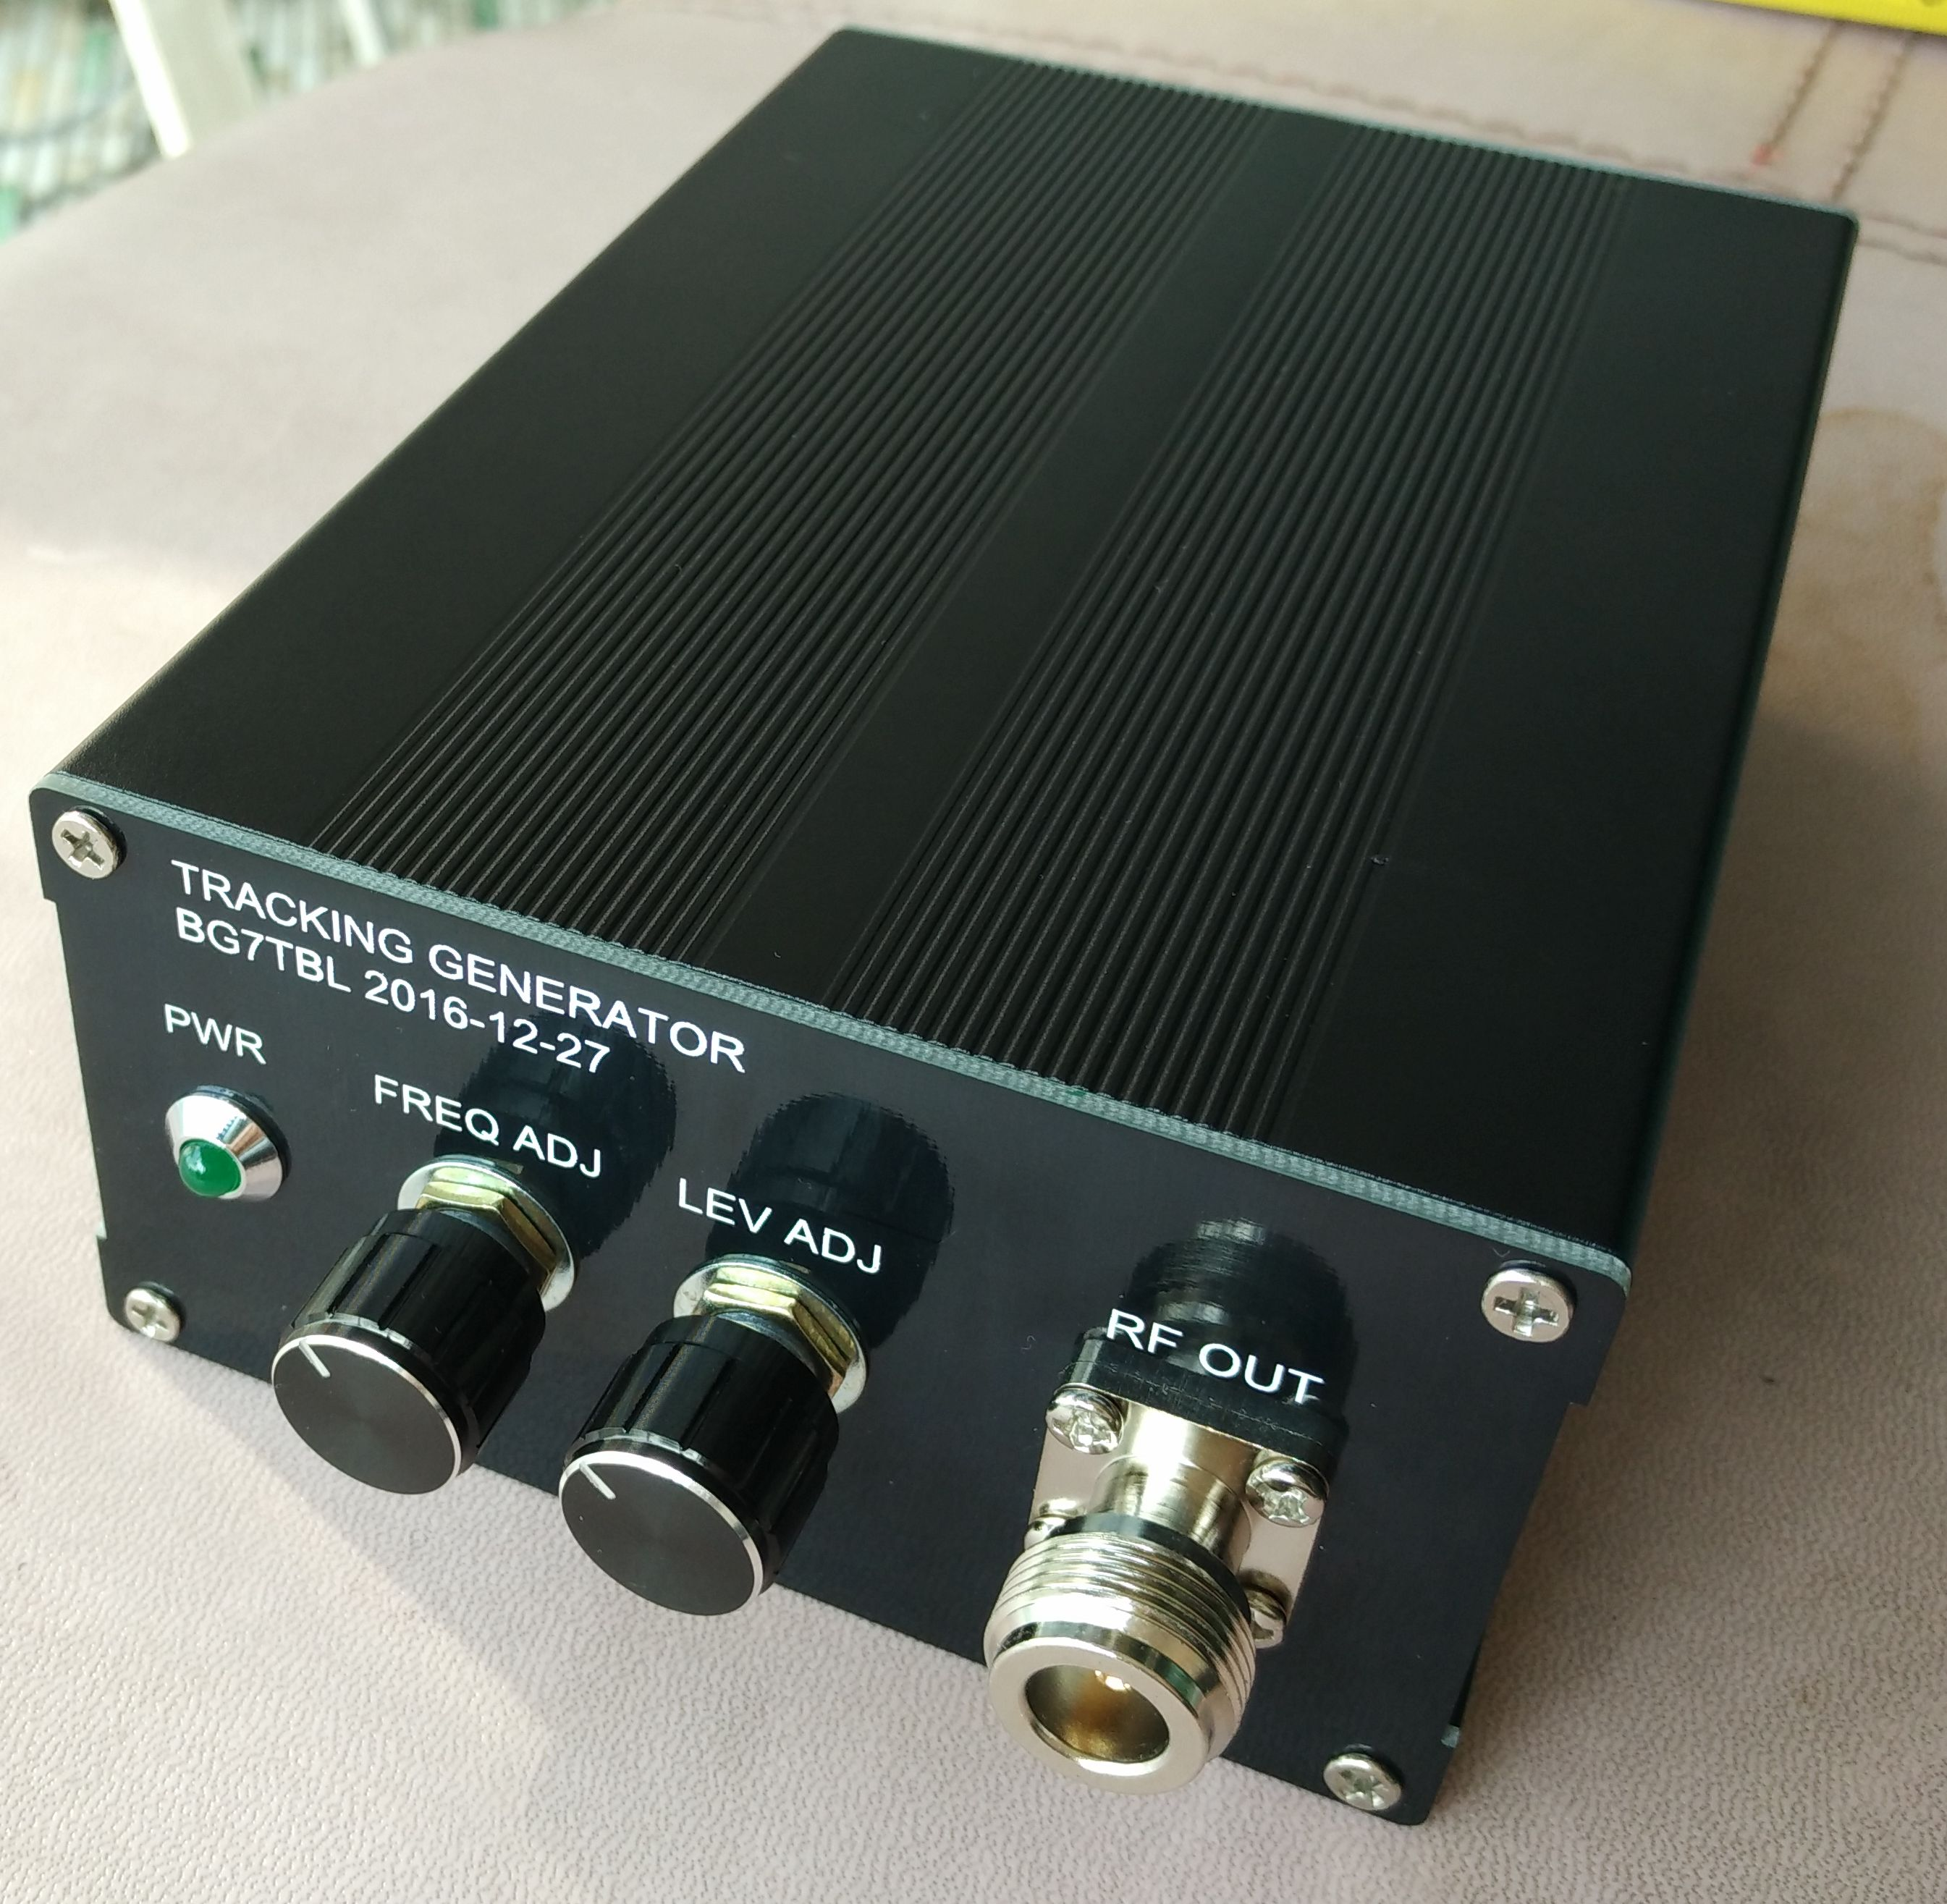 Free Shipping By BG7TBL HP8590A HP8591 HP8565A HP8568A Command Spectrum Analyzer Tracking Generator